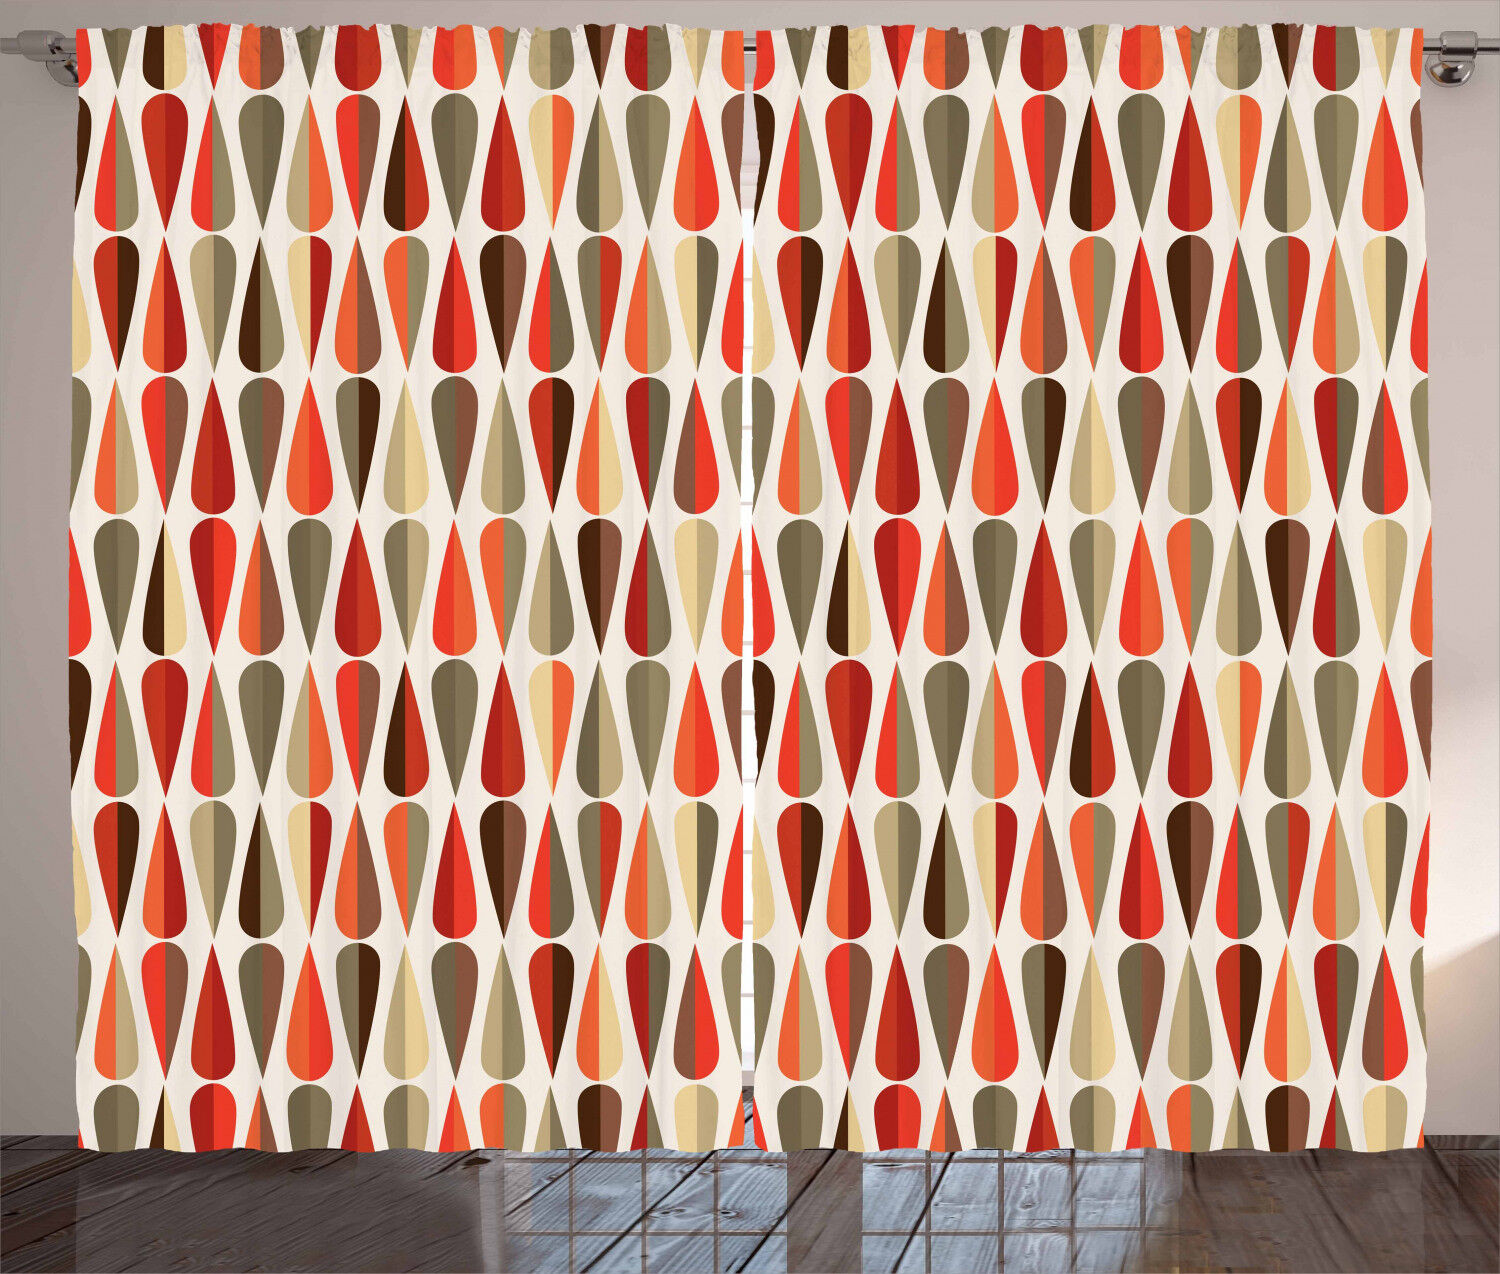 Geometric Curtains 70s Retro Style Window Drapes 2 Panel Set 108x84 Inches